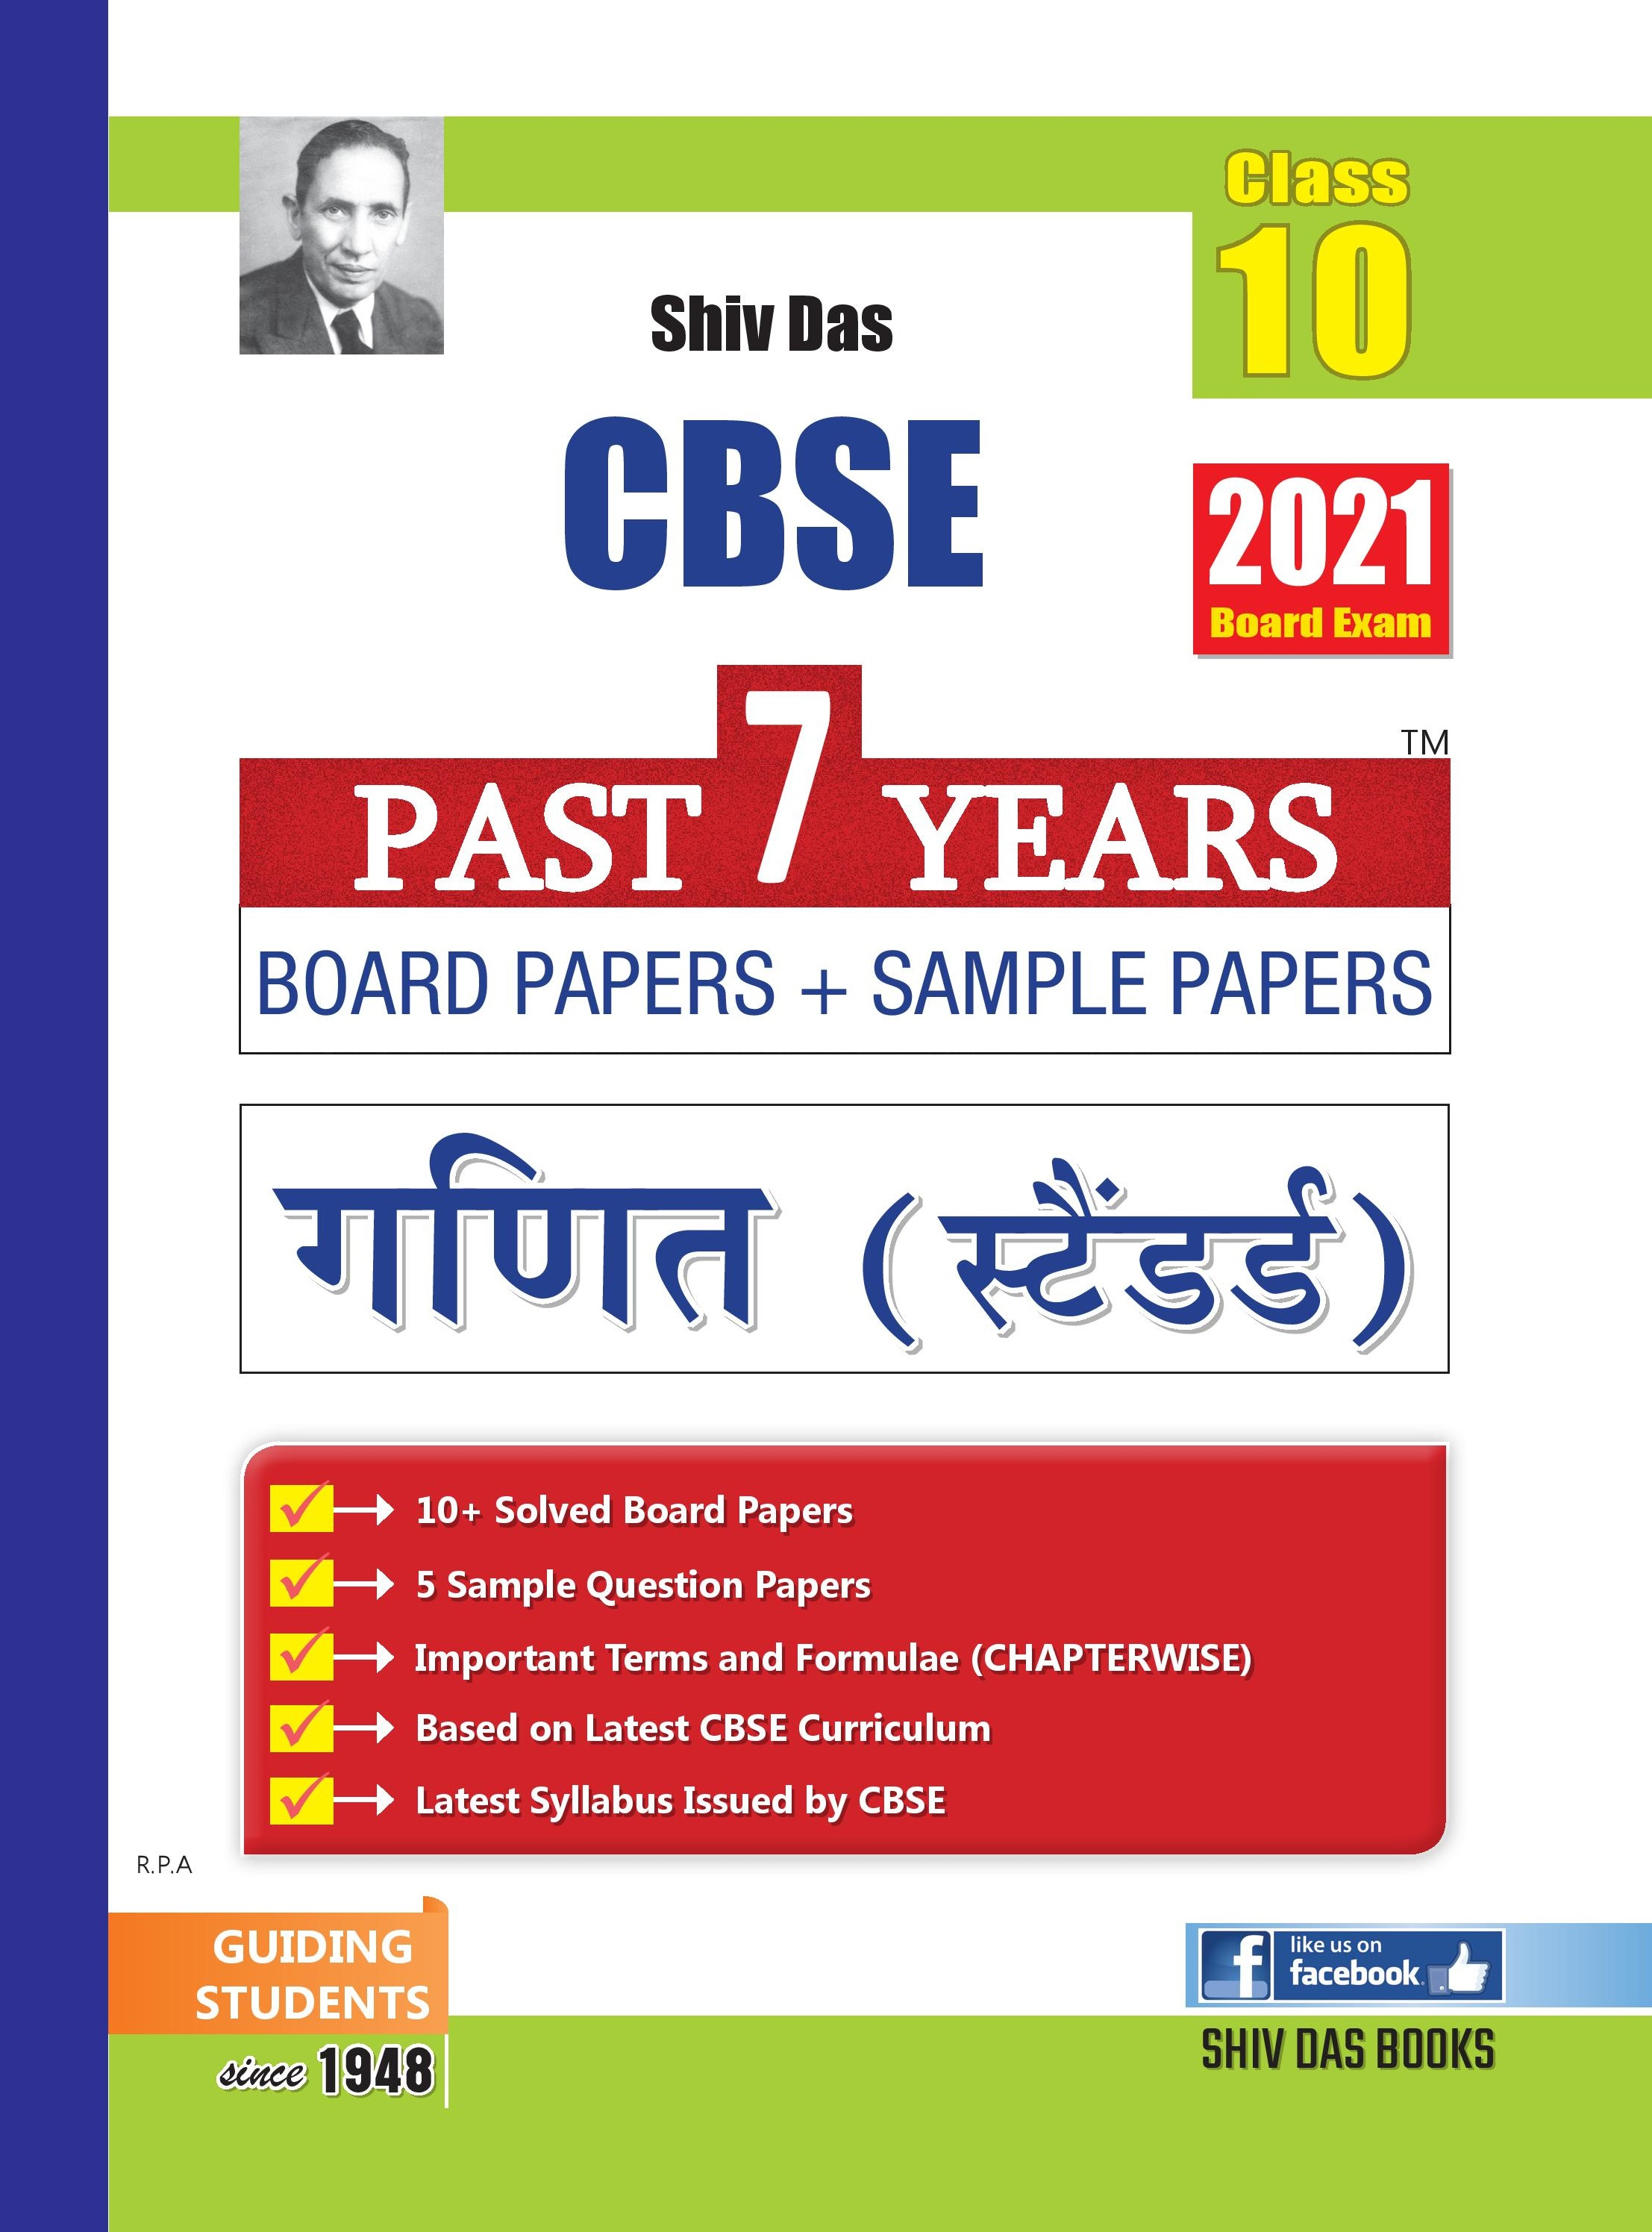 CBSE Past 7 Years Solved Board Papers and Sample Papers for Class 10 Ganit (STANDARD) By SHIVDAS (2021 Board Exam Edition)